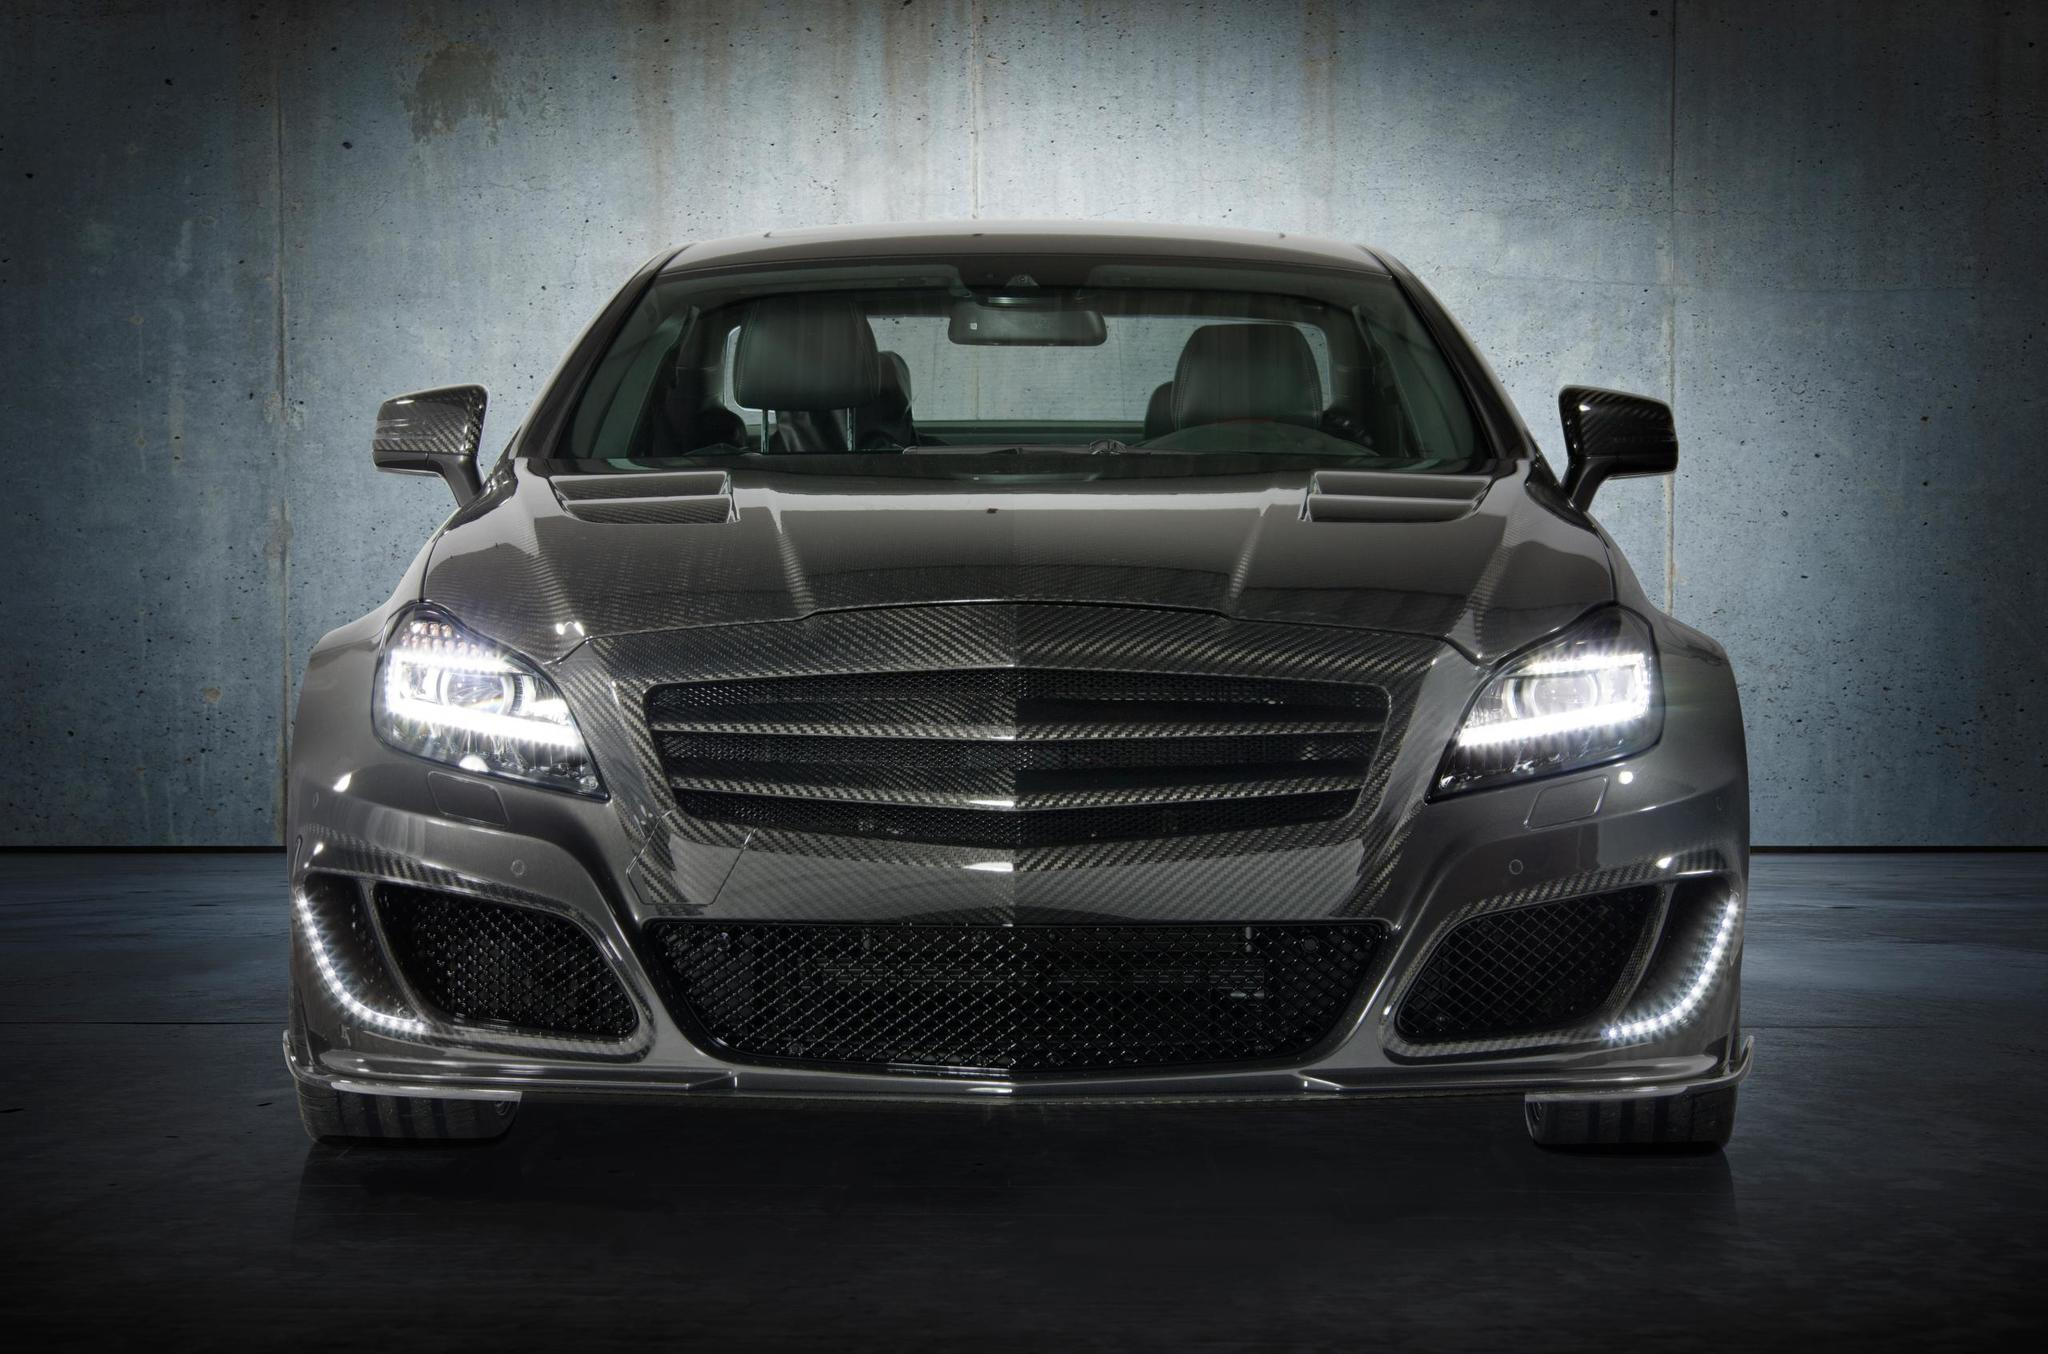 Mansory body kit for Mercedes-Benz CLS latest model